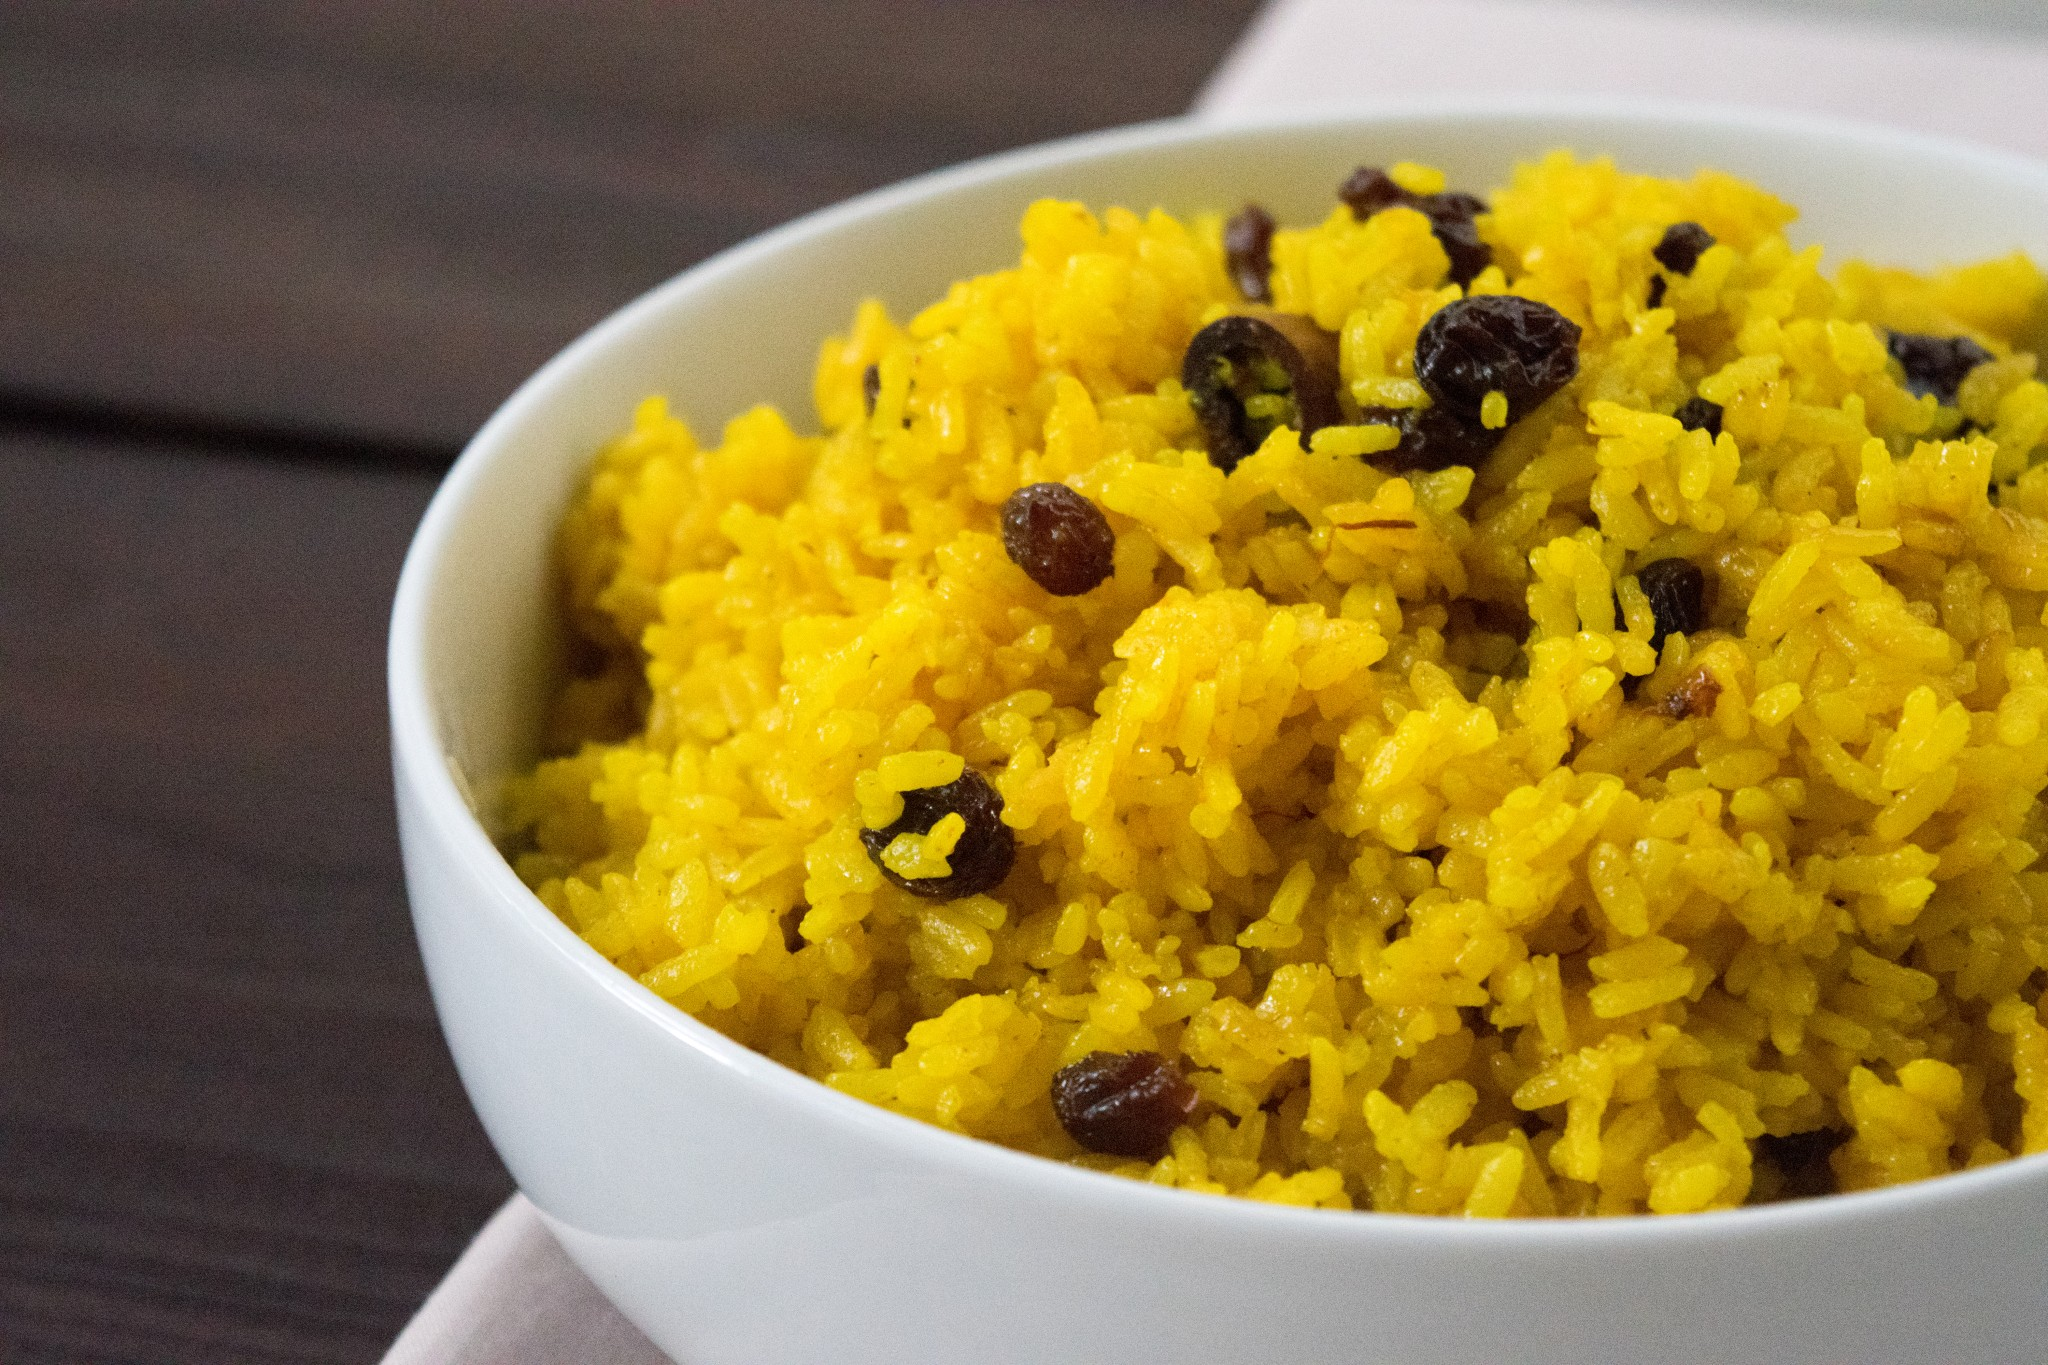 YELLOW RICE SOUTH AFRICA